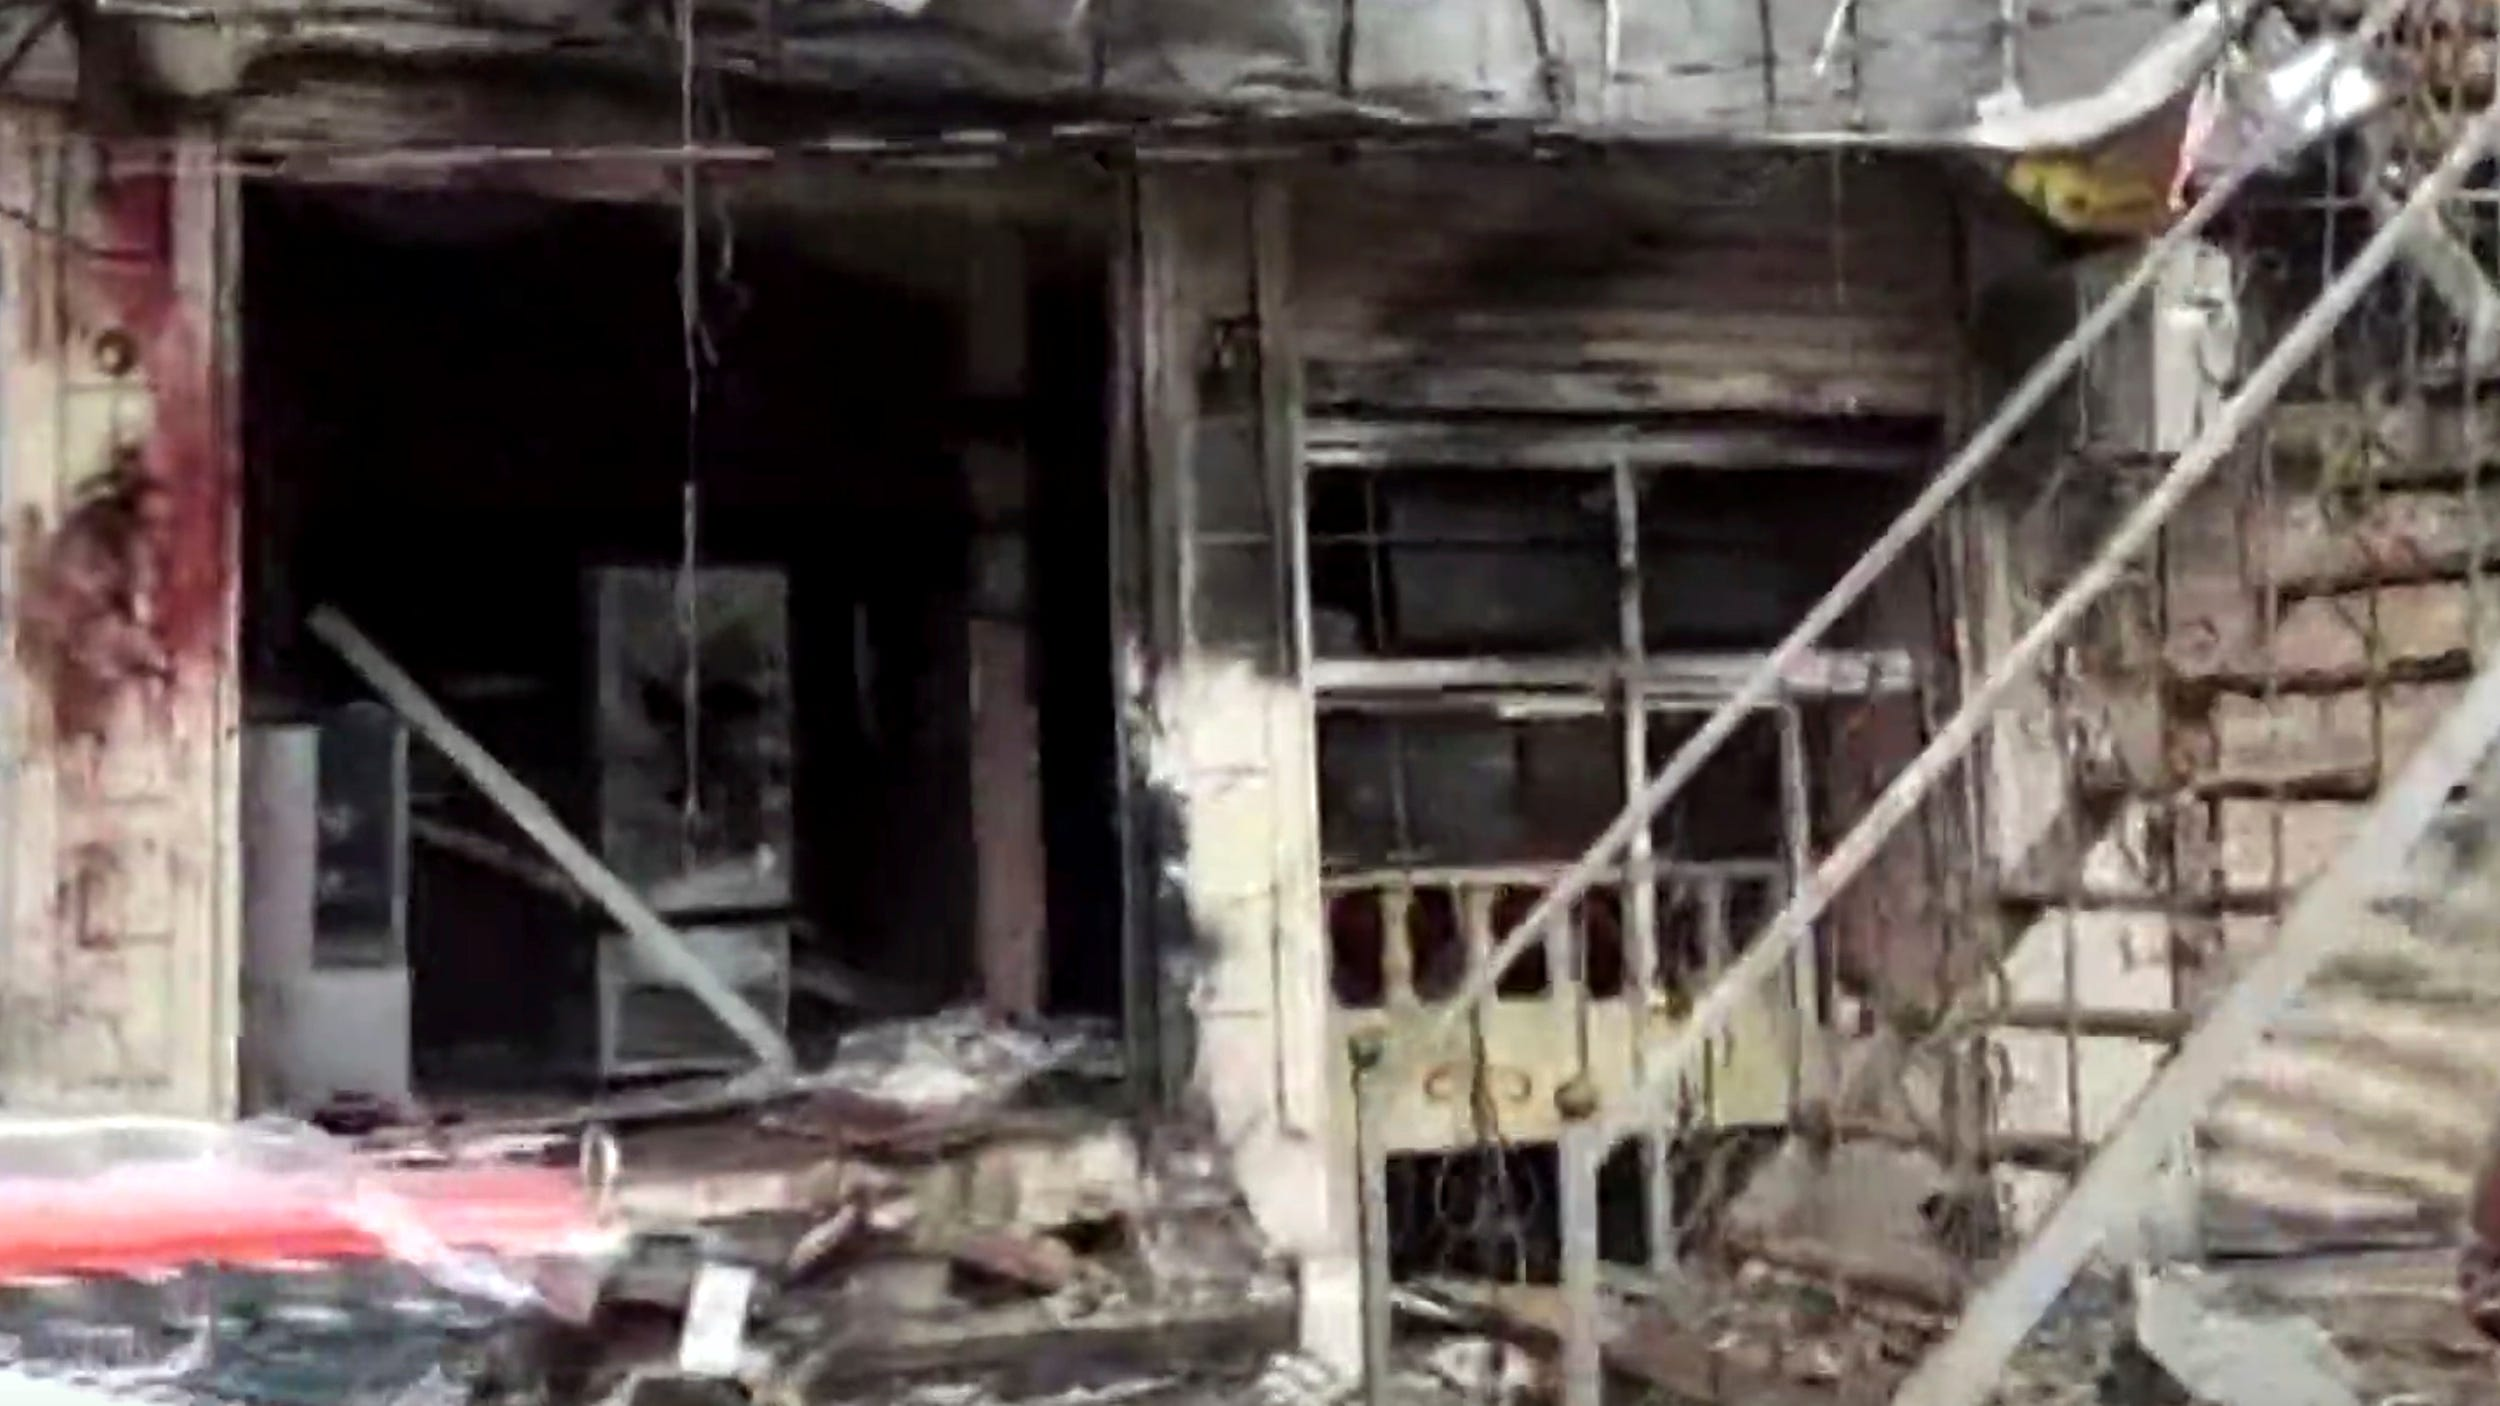 This frame grab from video provided by Hawar News, ANHA, the news agency for the semi-autonomous Kurdish areas in Syria, shows a damaged restaurant where an explosion occurred, in Manbij, Syria, Jan. 16, 2019. The Britain-based Syrian Observatory for Human Rights, a Syrian war monitoring group, and a local town council said Wednesday that the explosion took place near a patrol of the U.S.-led coalition and that there are casualties.